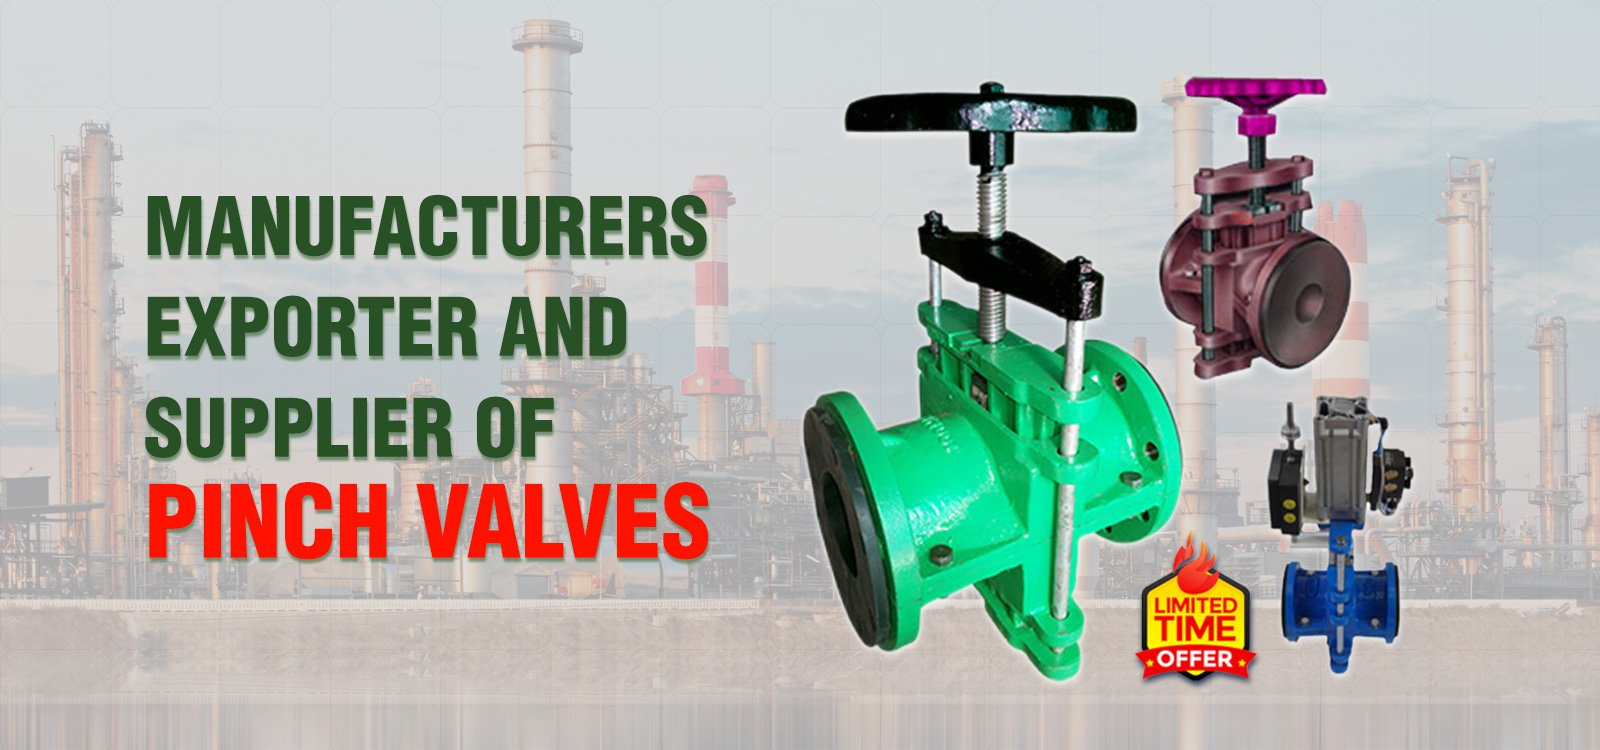 Manufacturers, exporter and supplier of pinch valves.